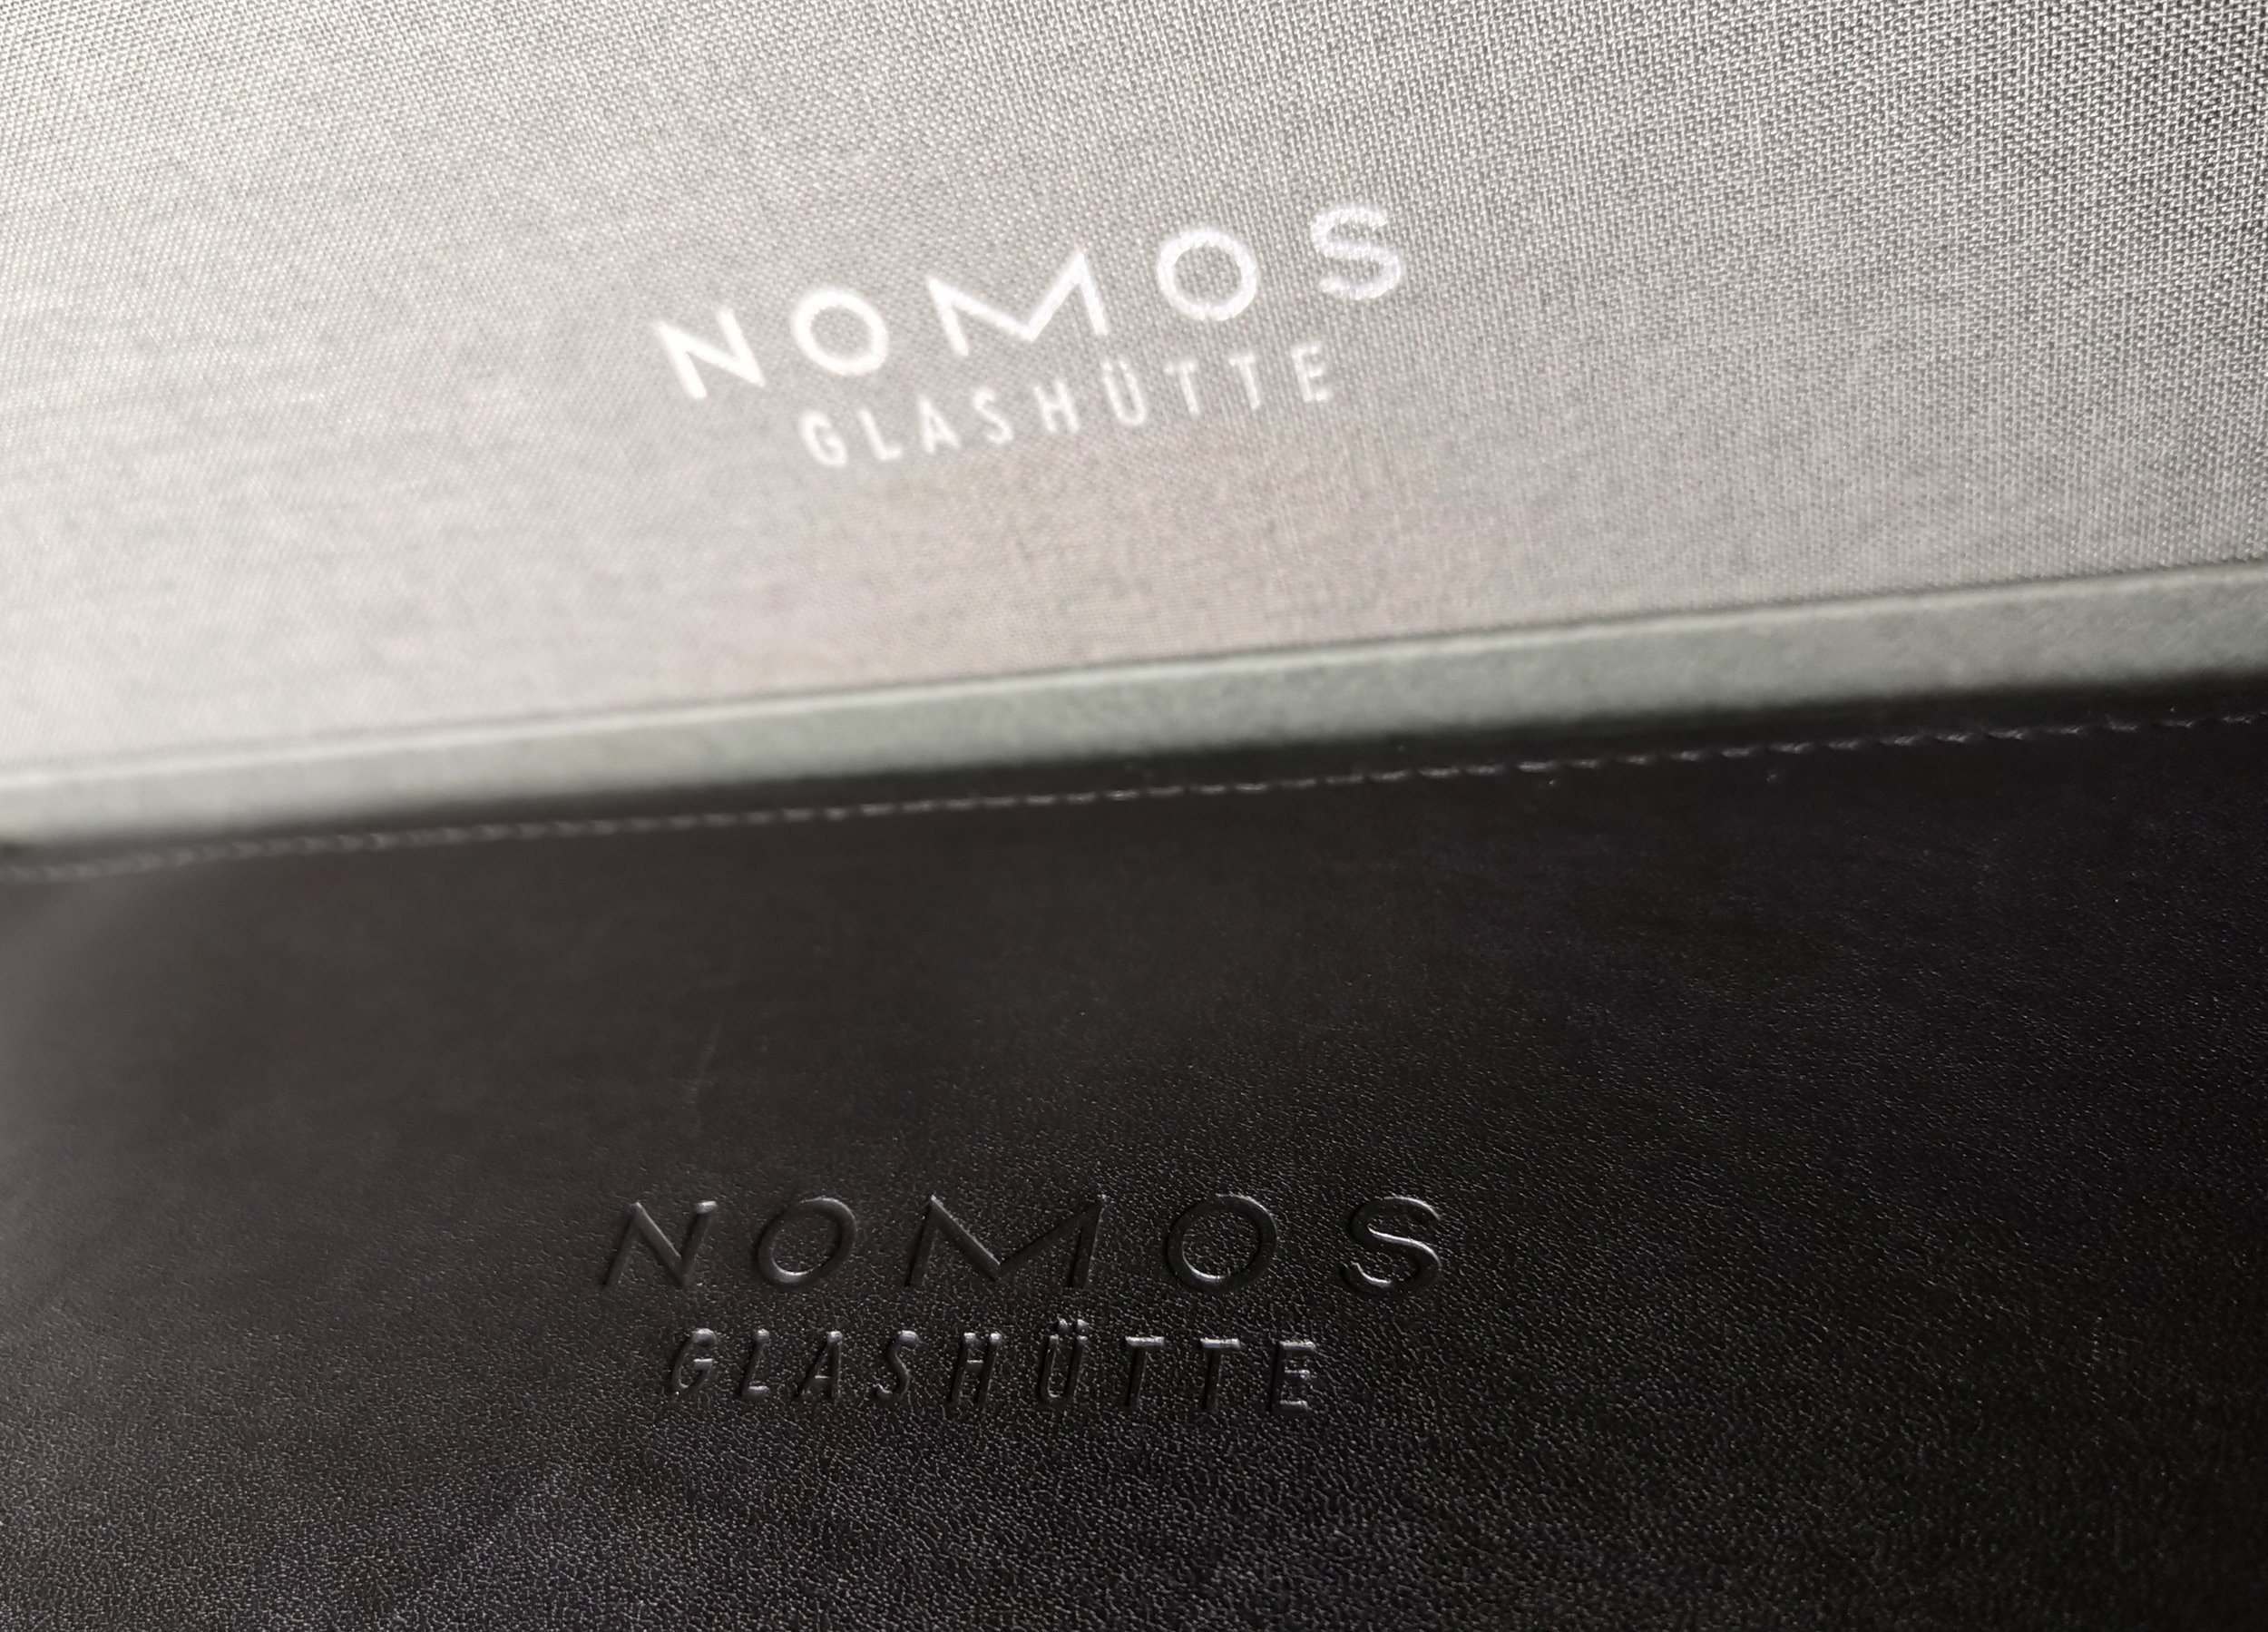 NOMOS keeps it clean and tidy.